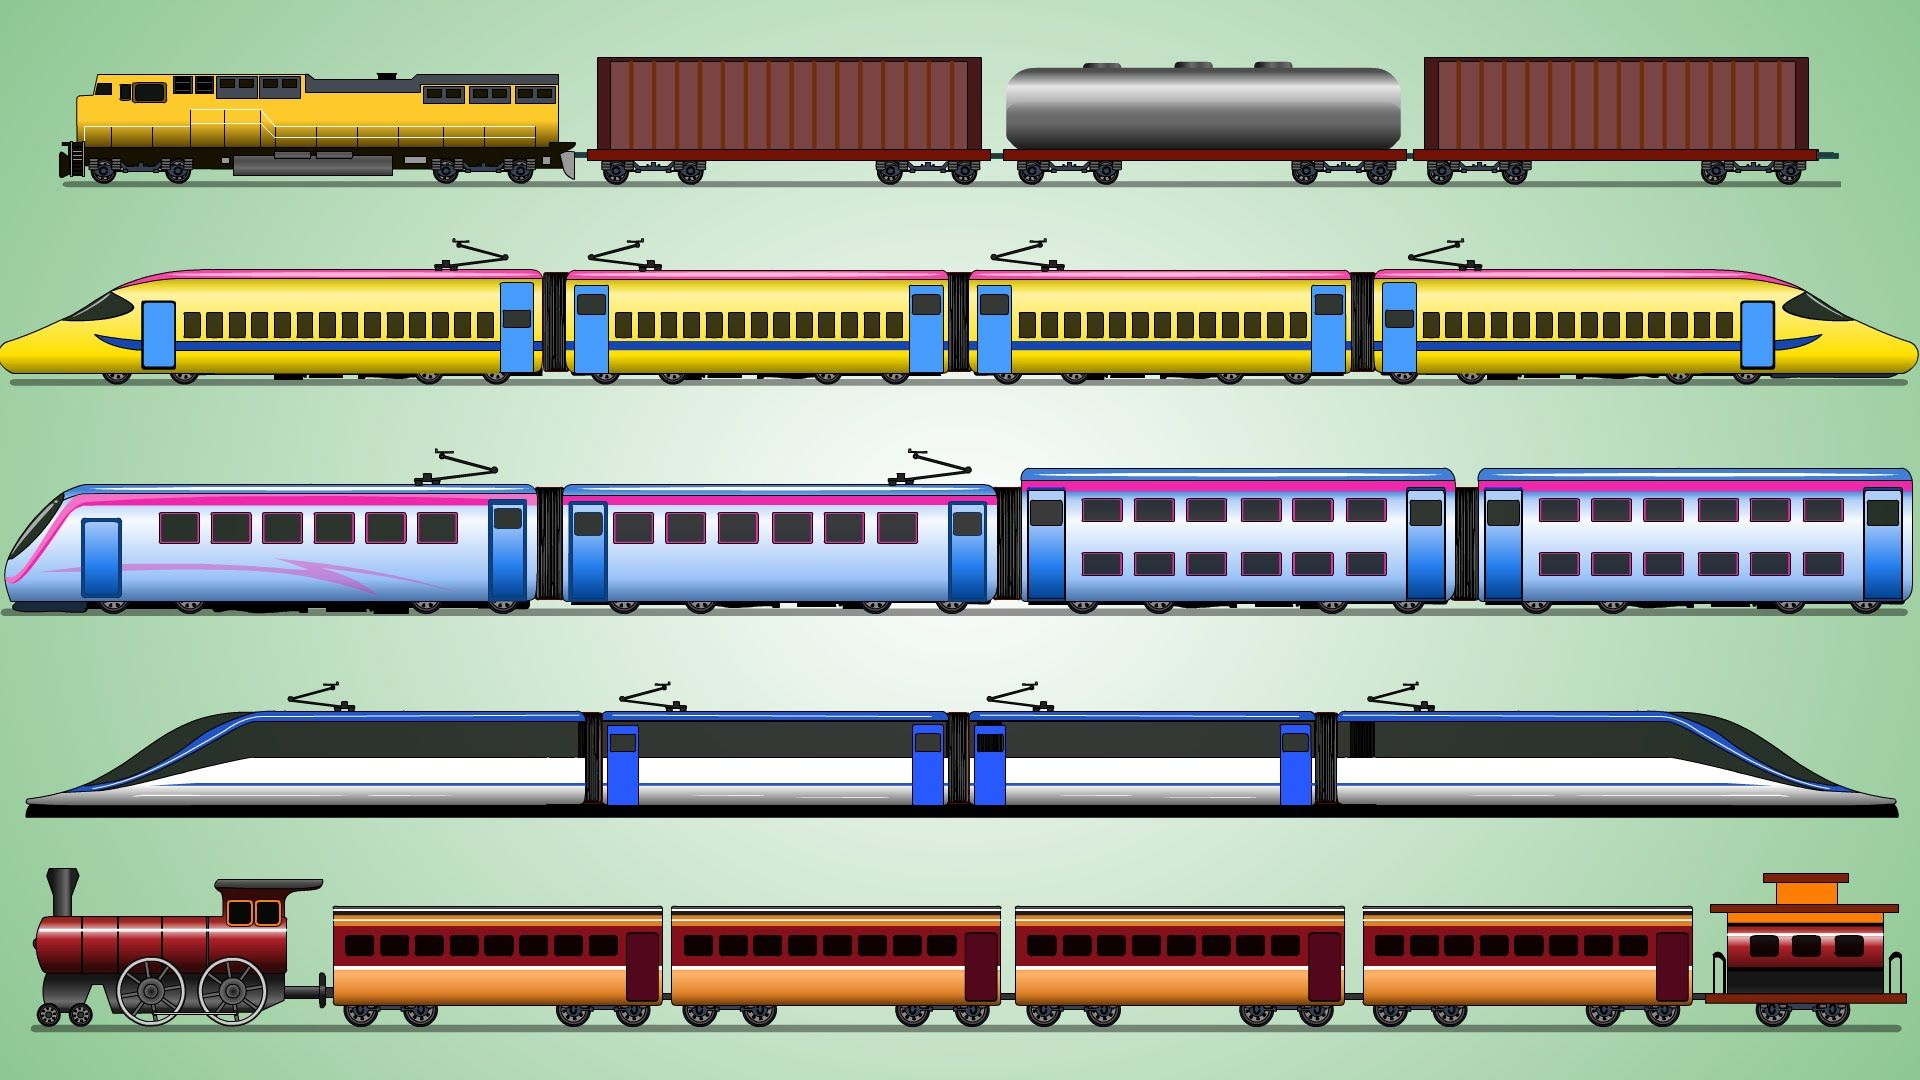 Learning Train Freight Train Railway Vehicles For Kids My